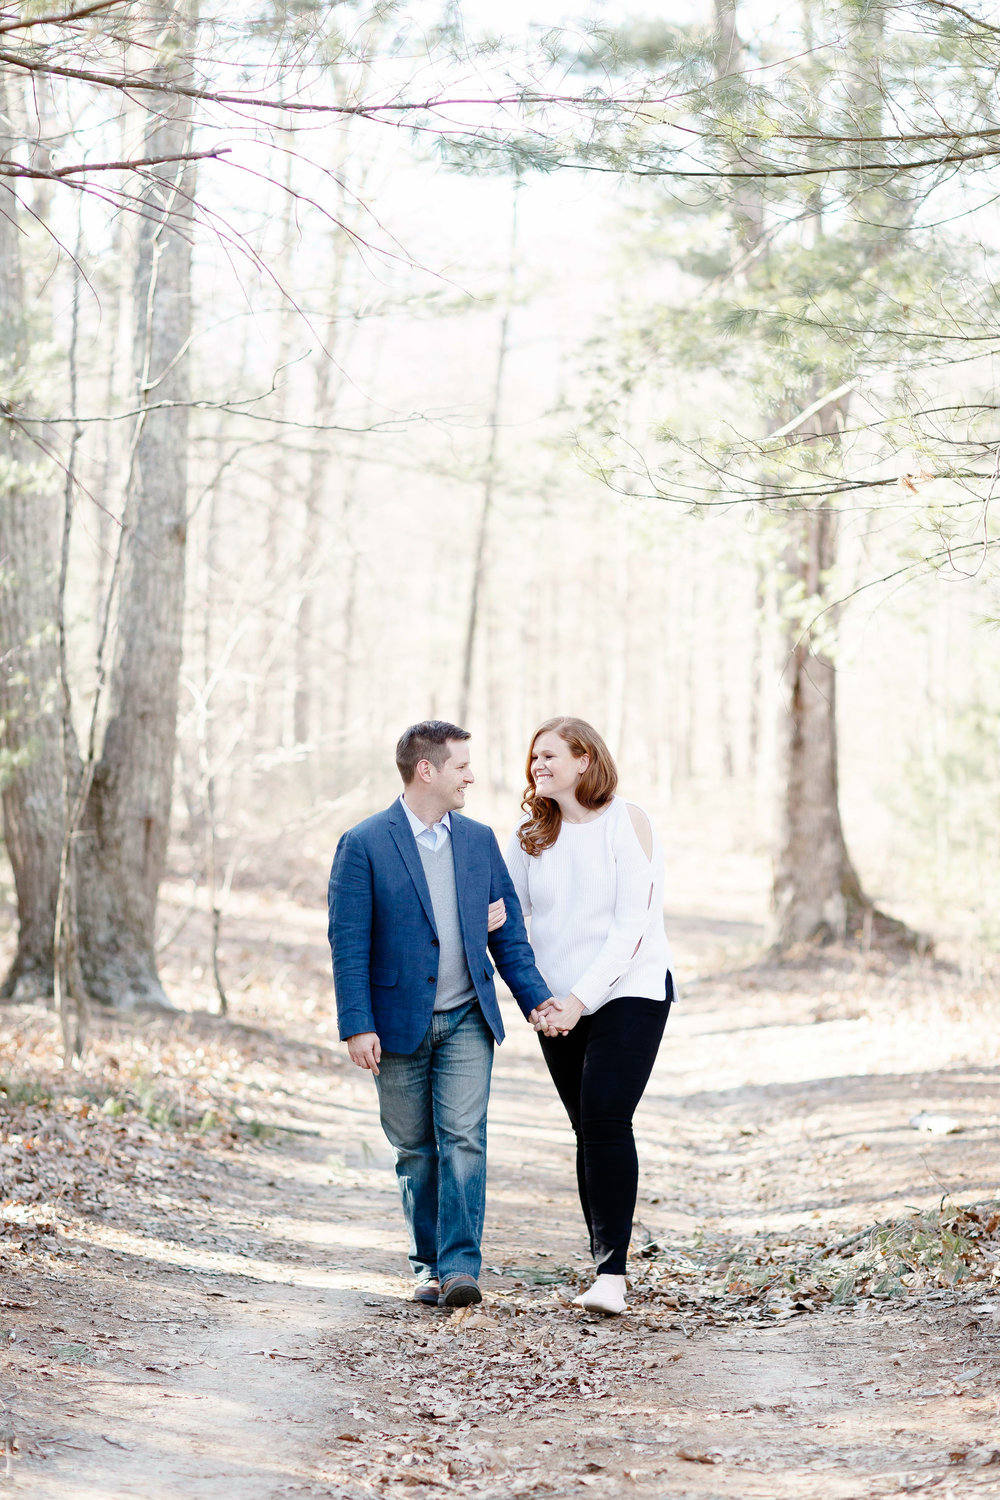 LaurenIan_Engagement_Session_Getaway__OP27686-Edit.jpg